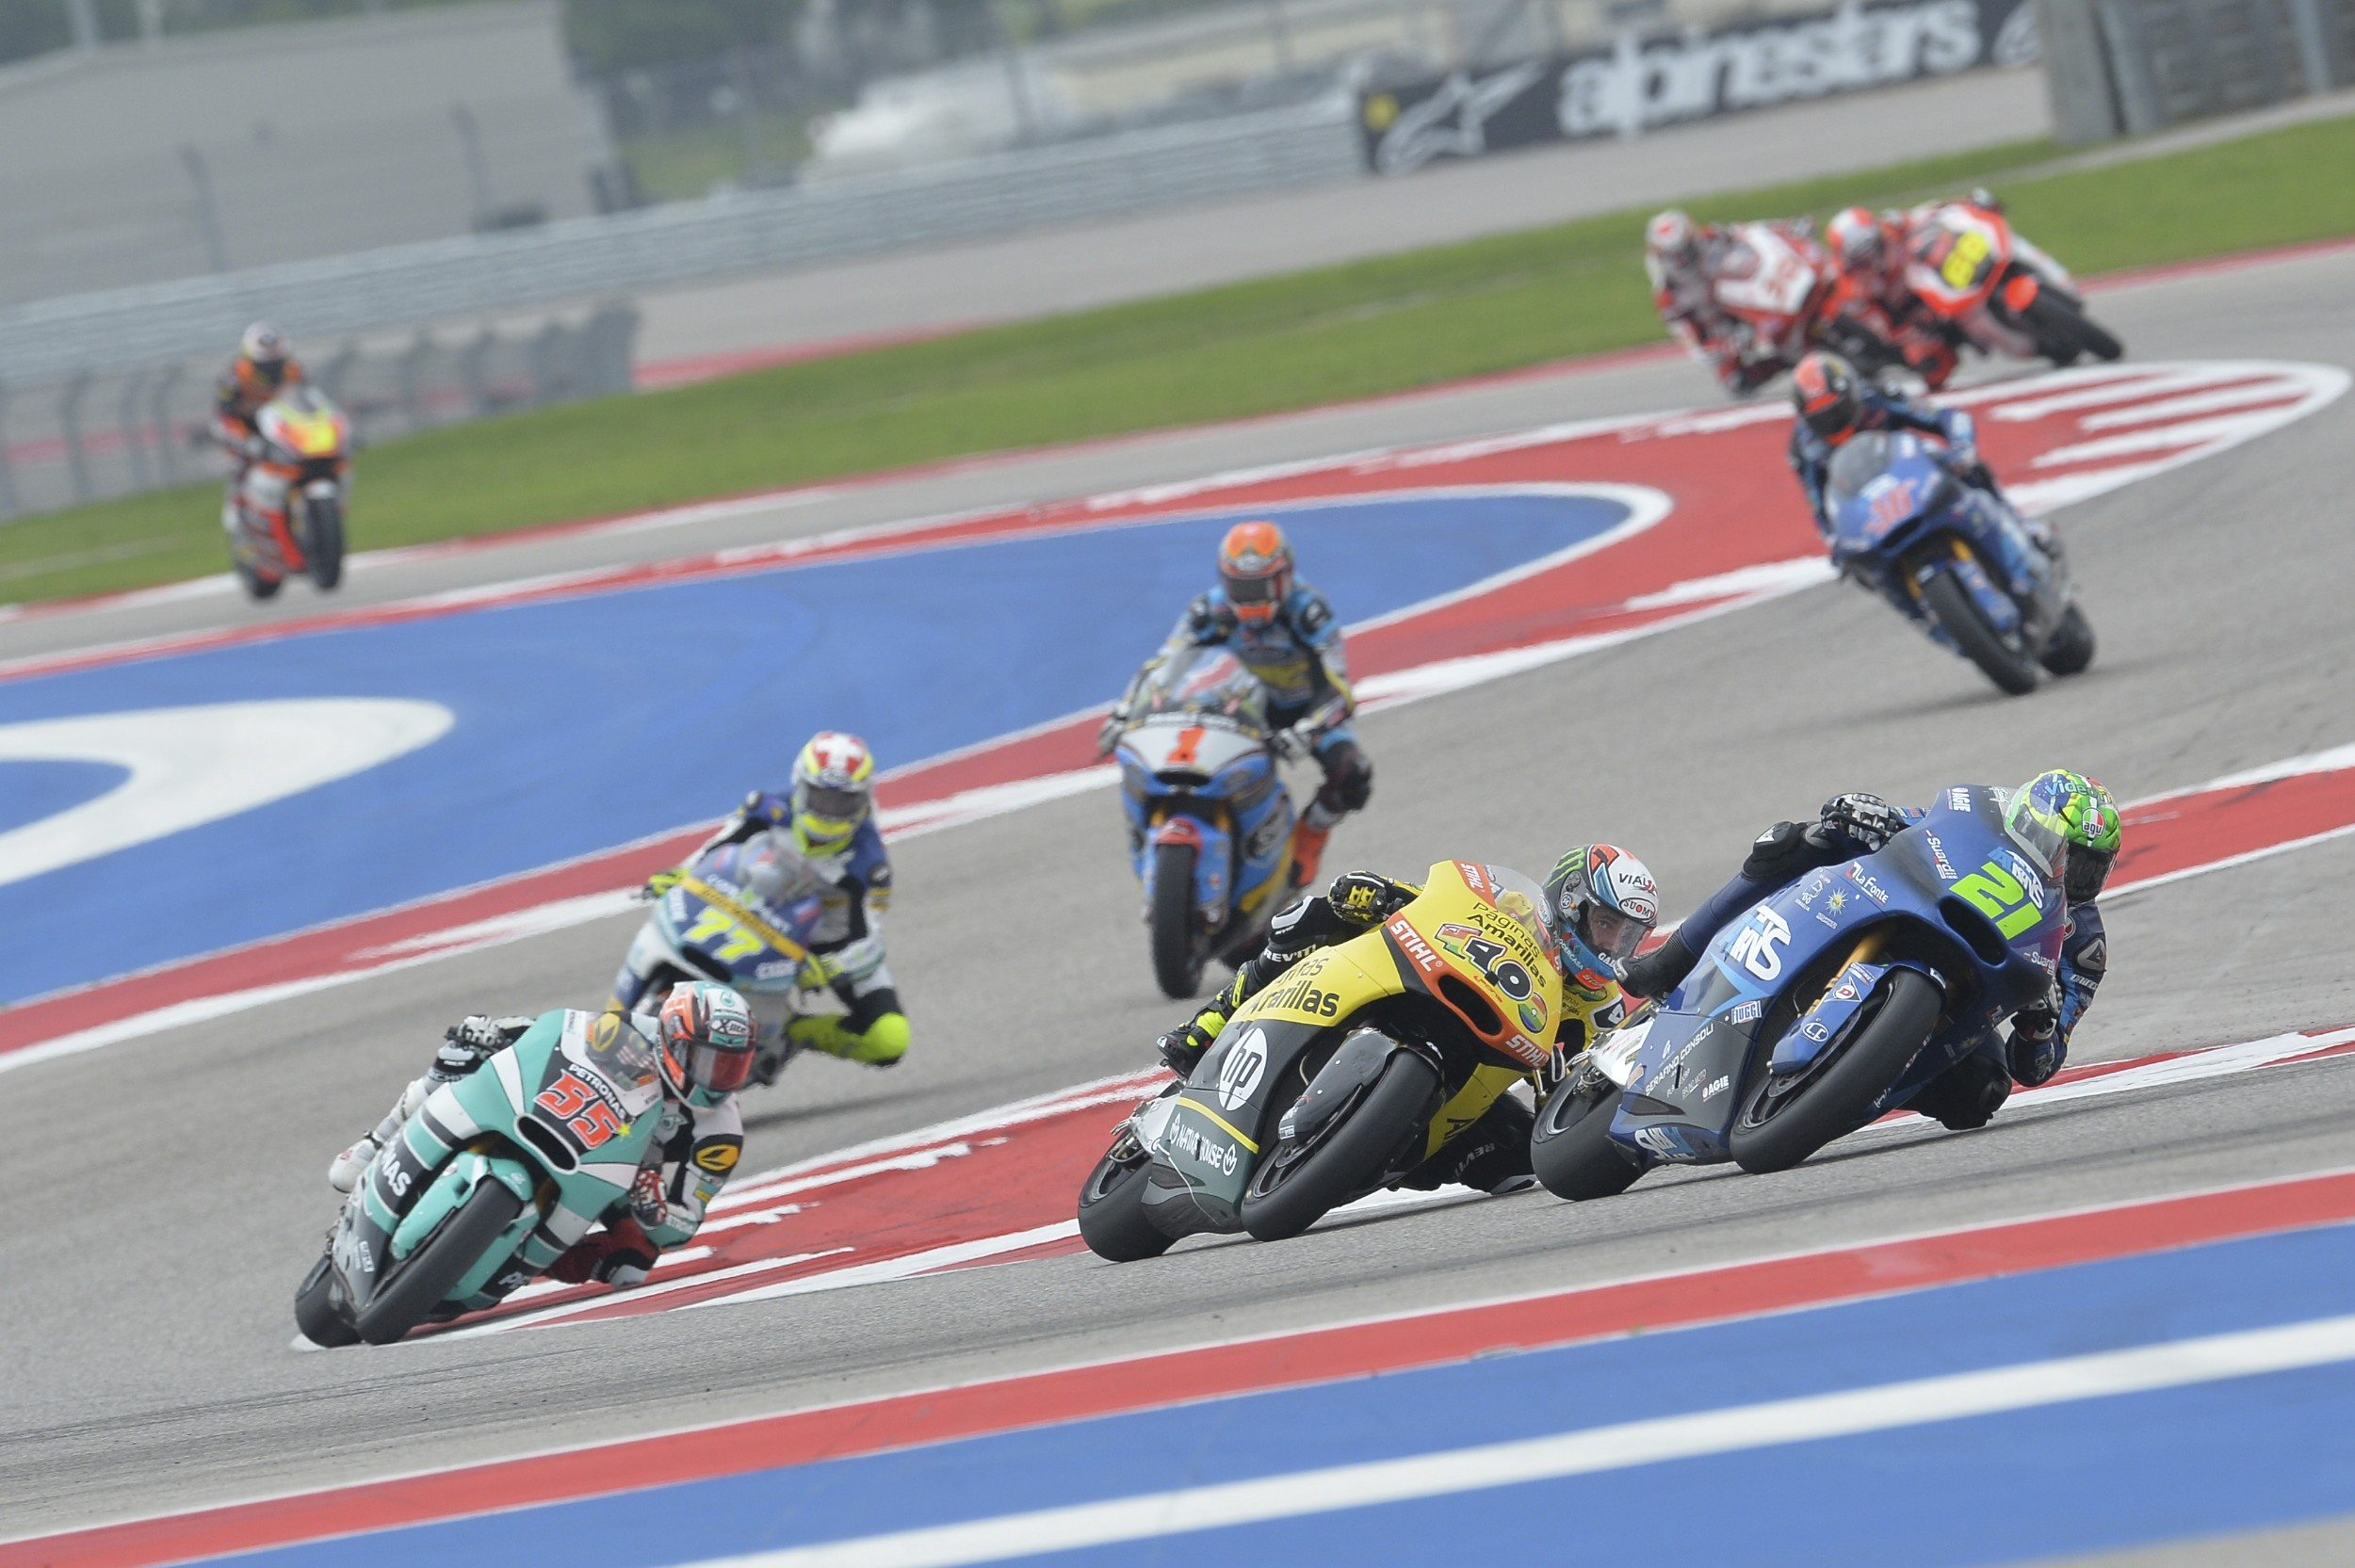 Morbidelli - Texas race